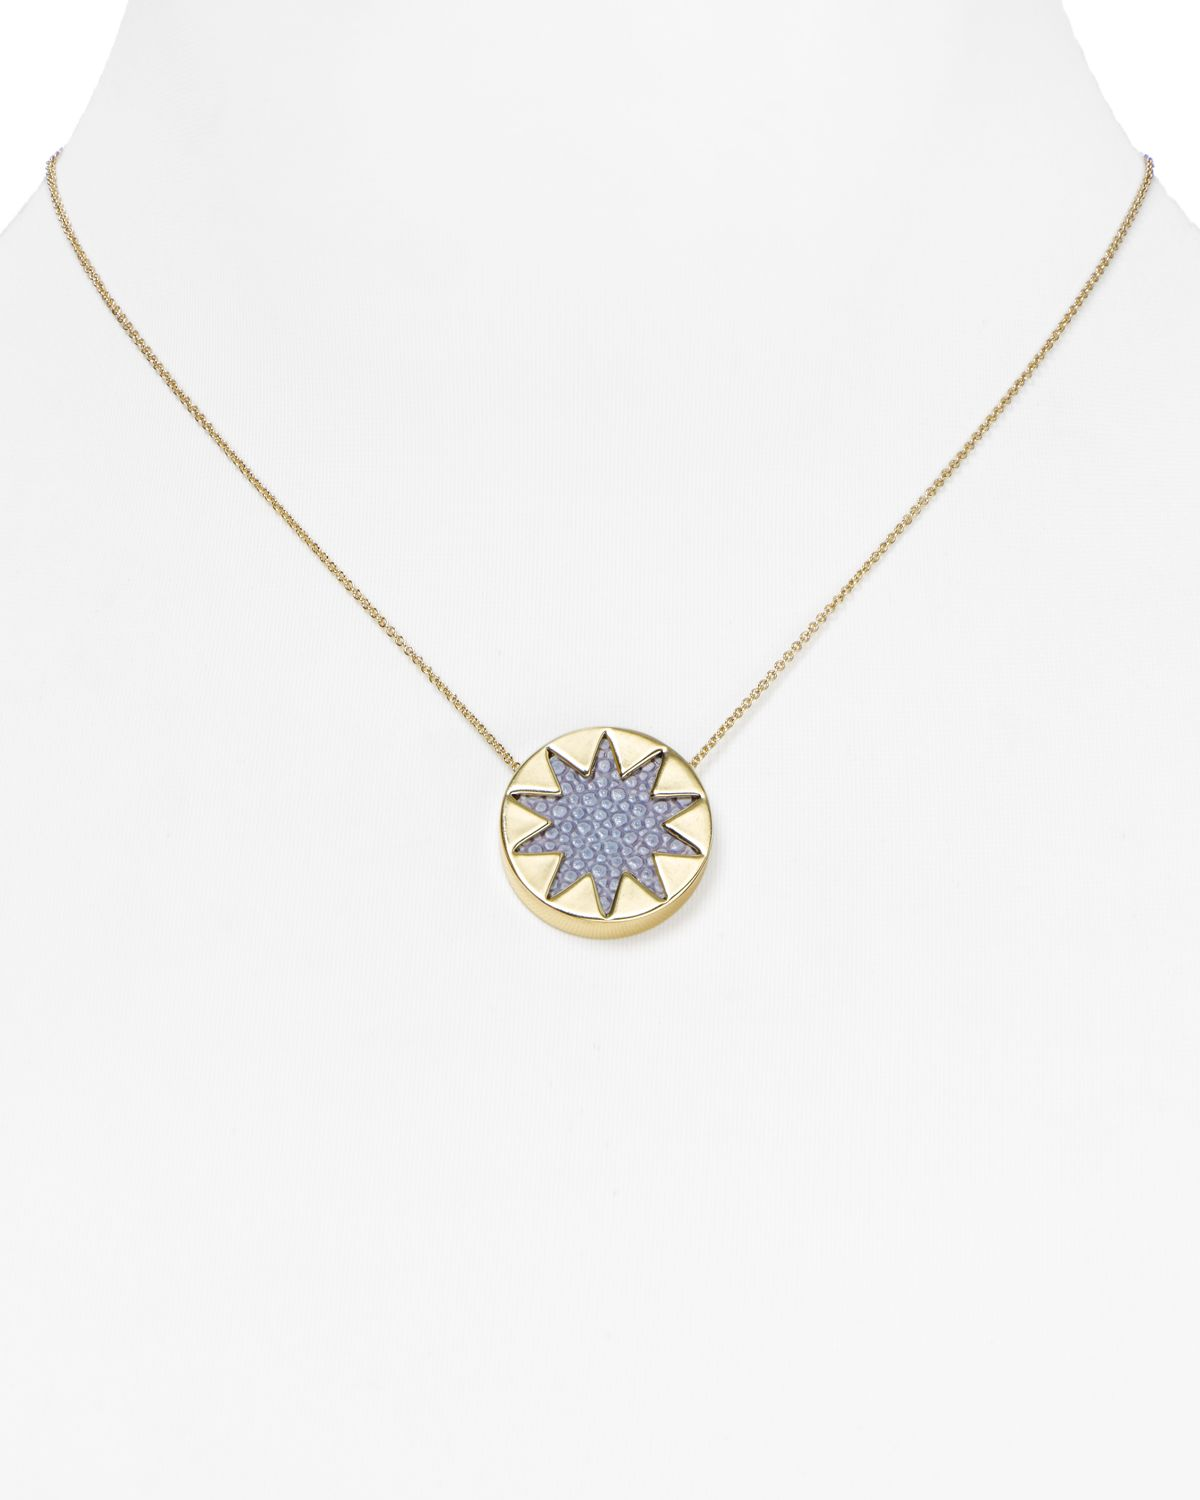 House Of Harlow House of Harlow Mini Starburst Pendant Necklace in Metallic Gold